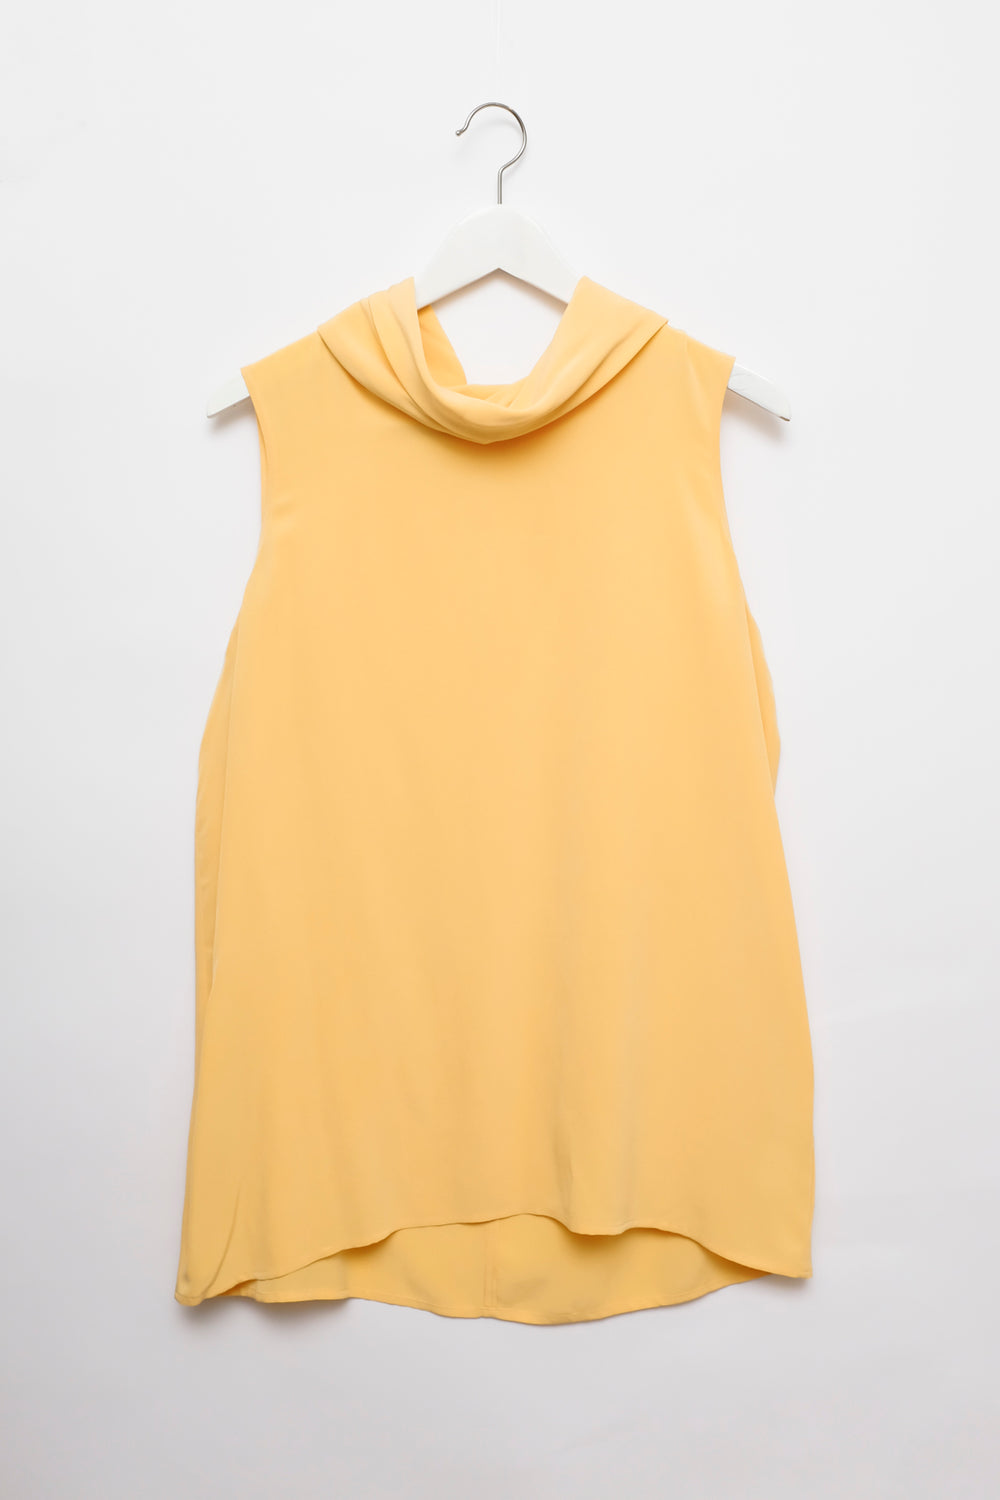 0001_PEACH VINTAGE SILK TOP